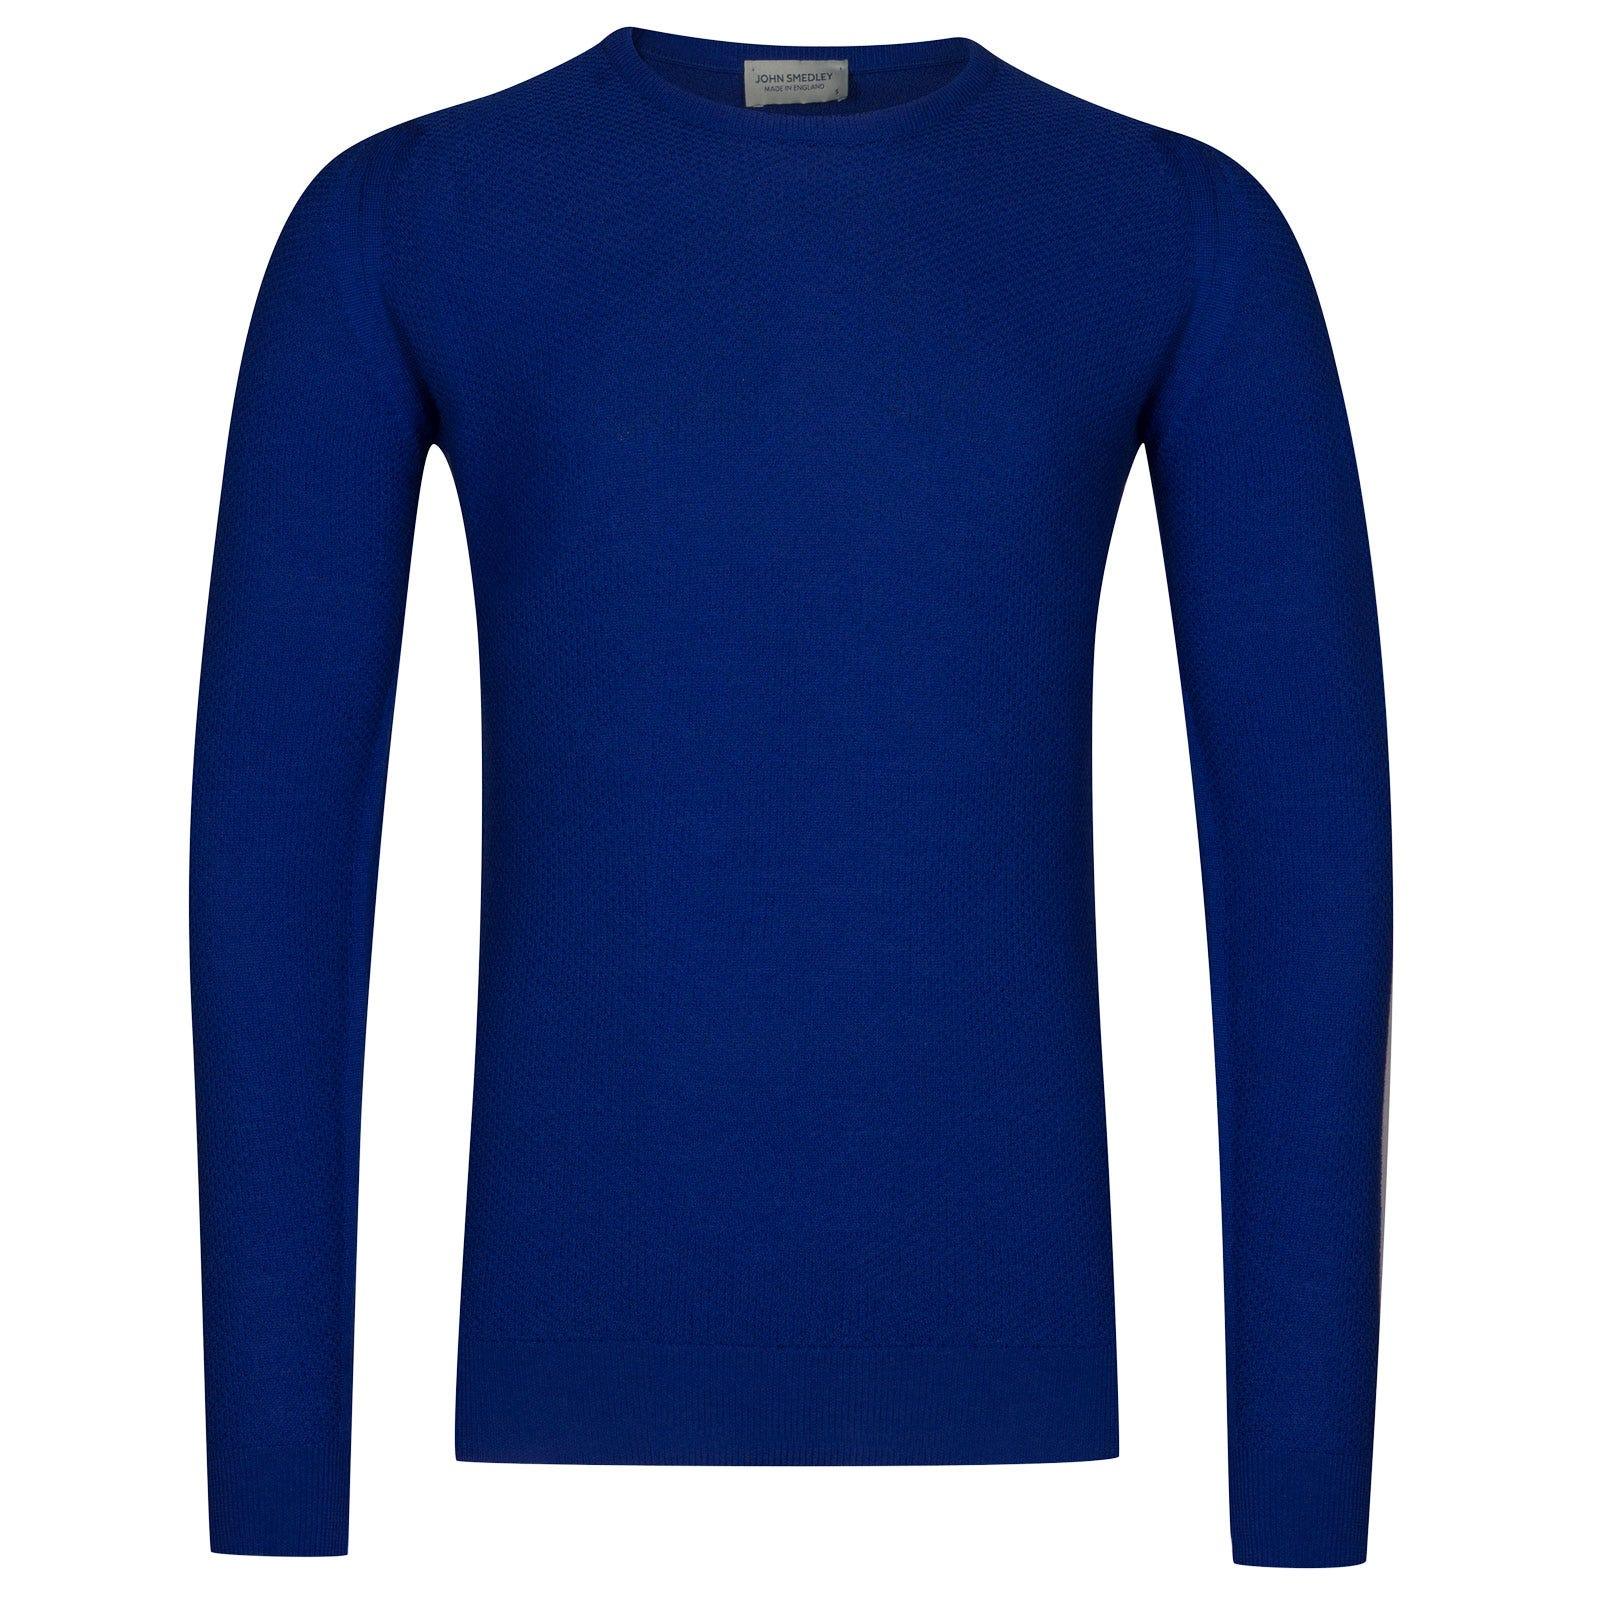 John Smedley 1Singular Merino Wool Pullover in Coniston Blue-M